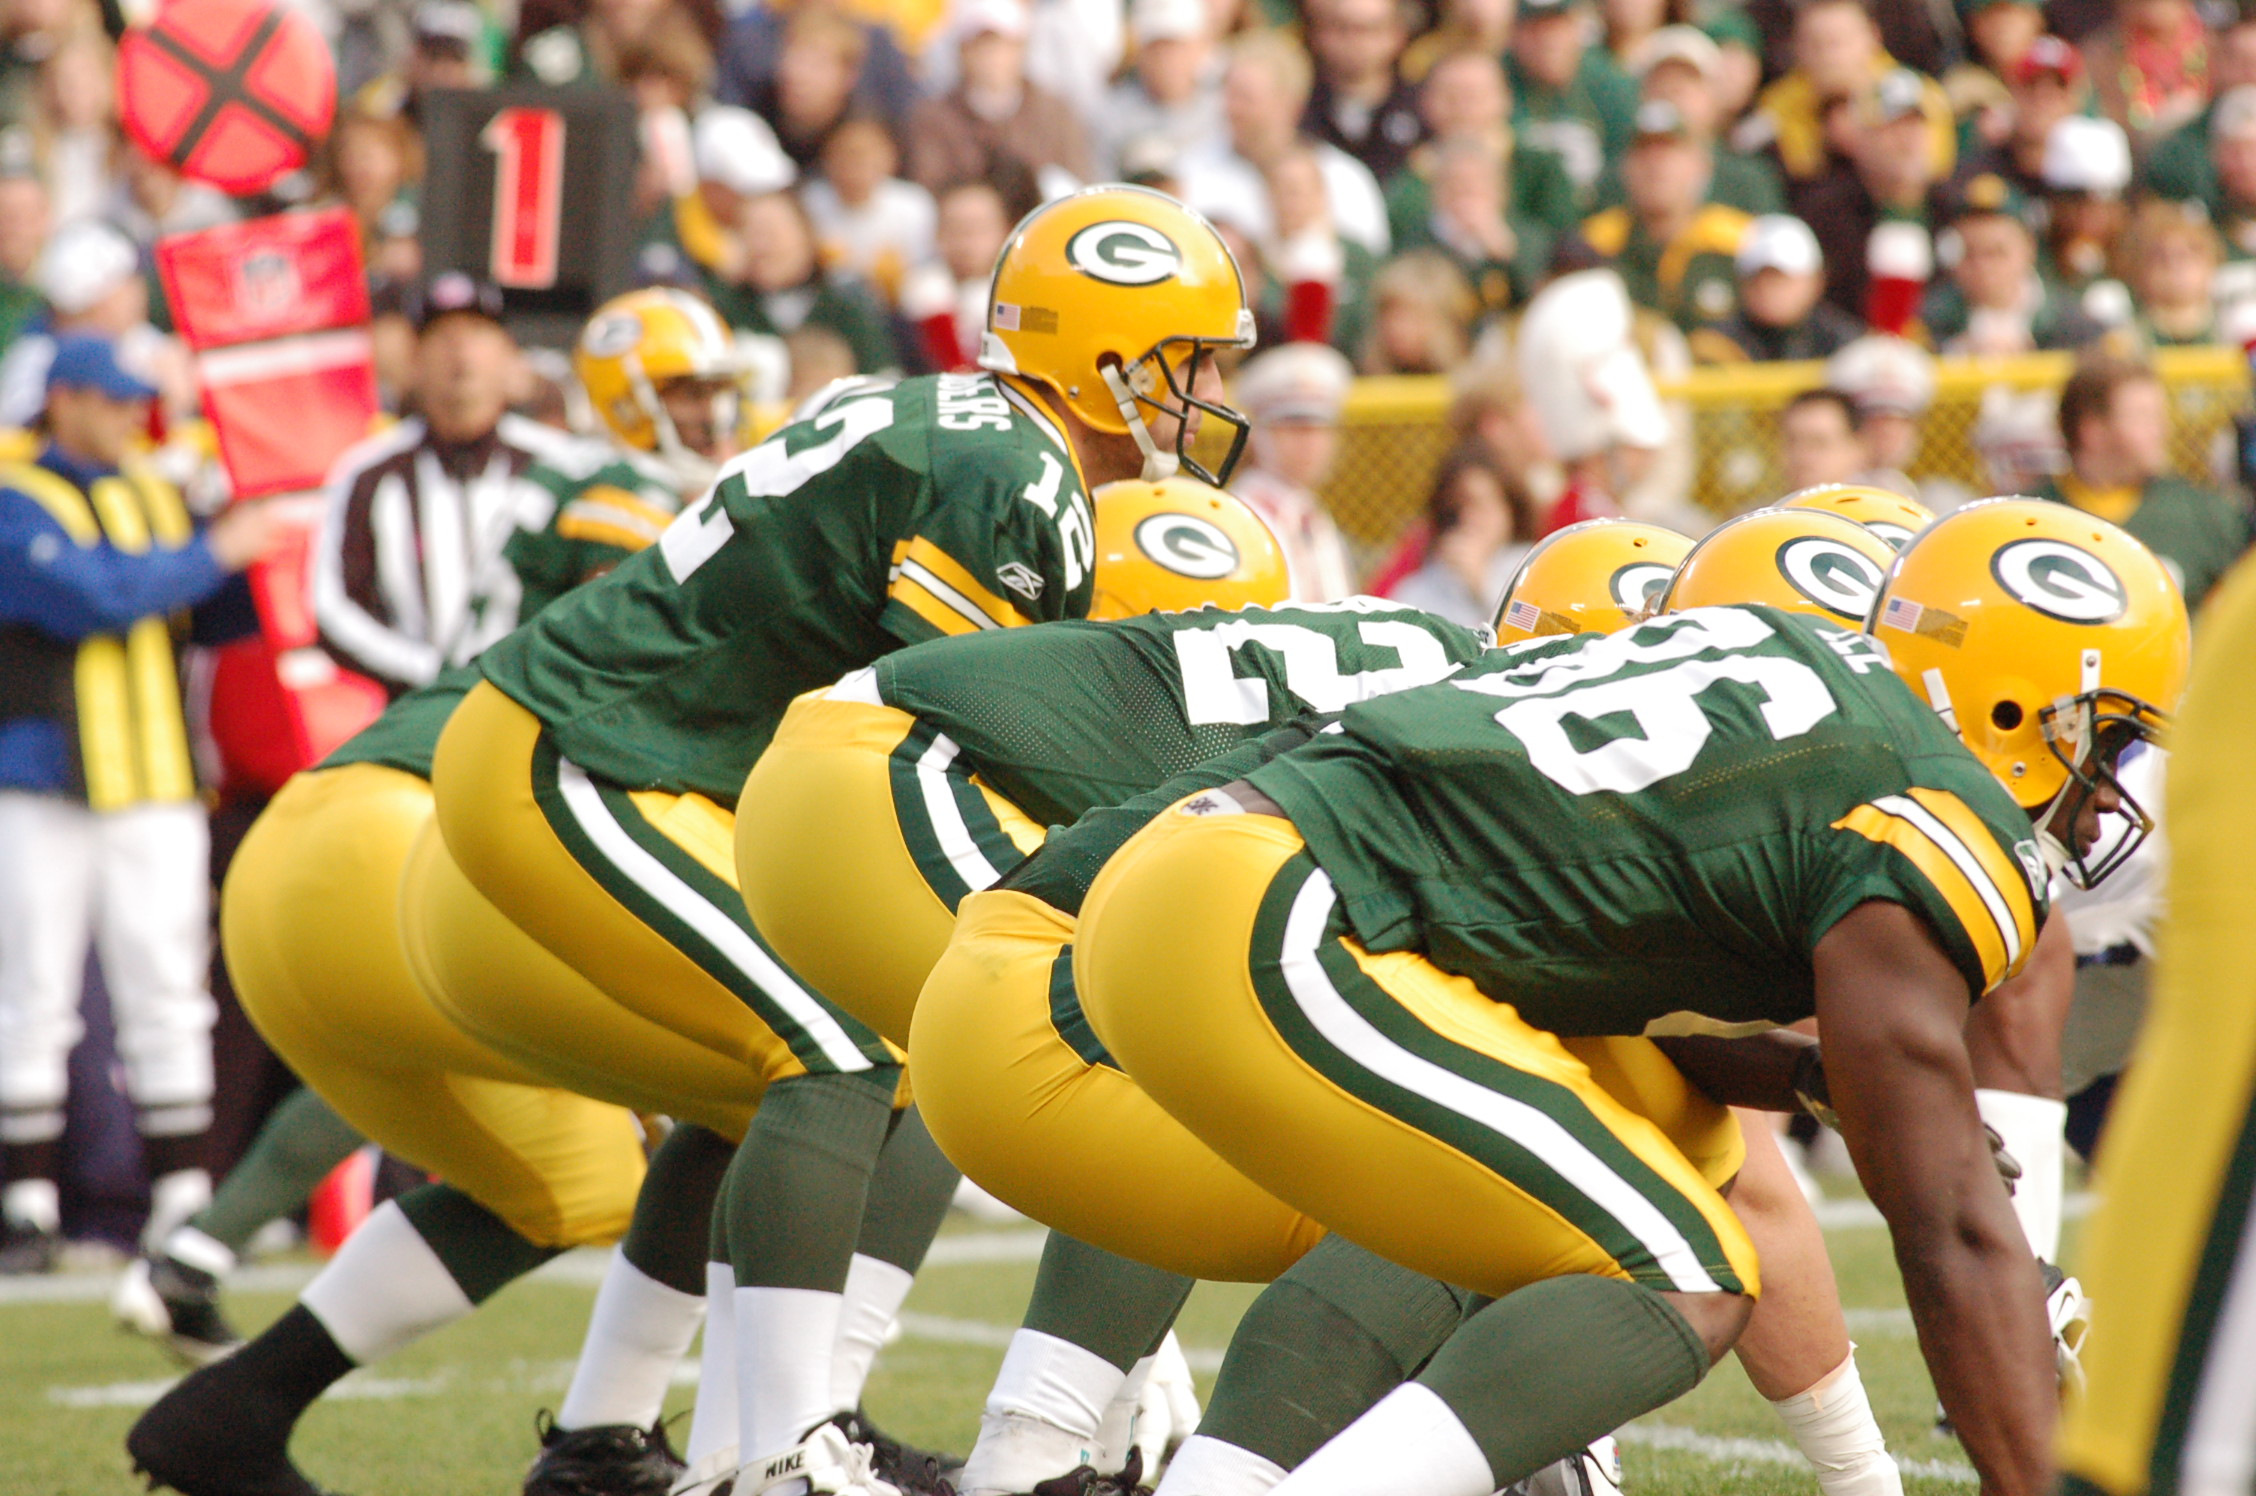 What to expect from the Packers this season by guest blogger Richard King